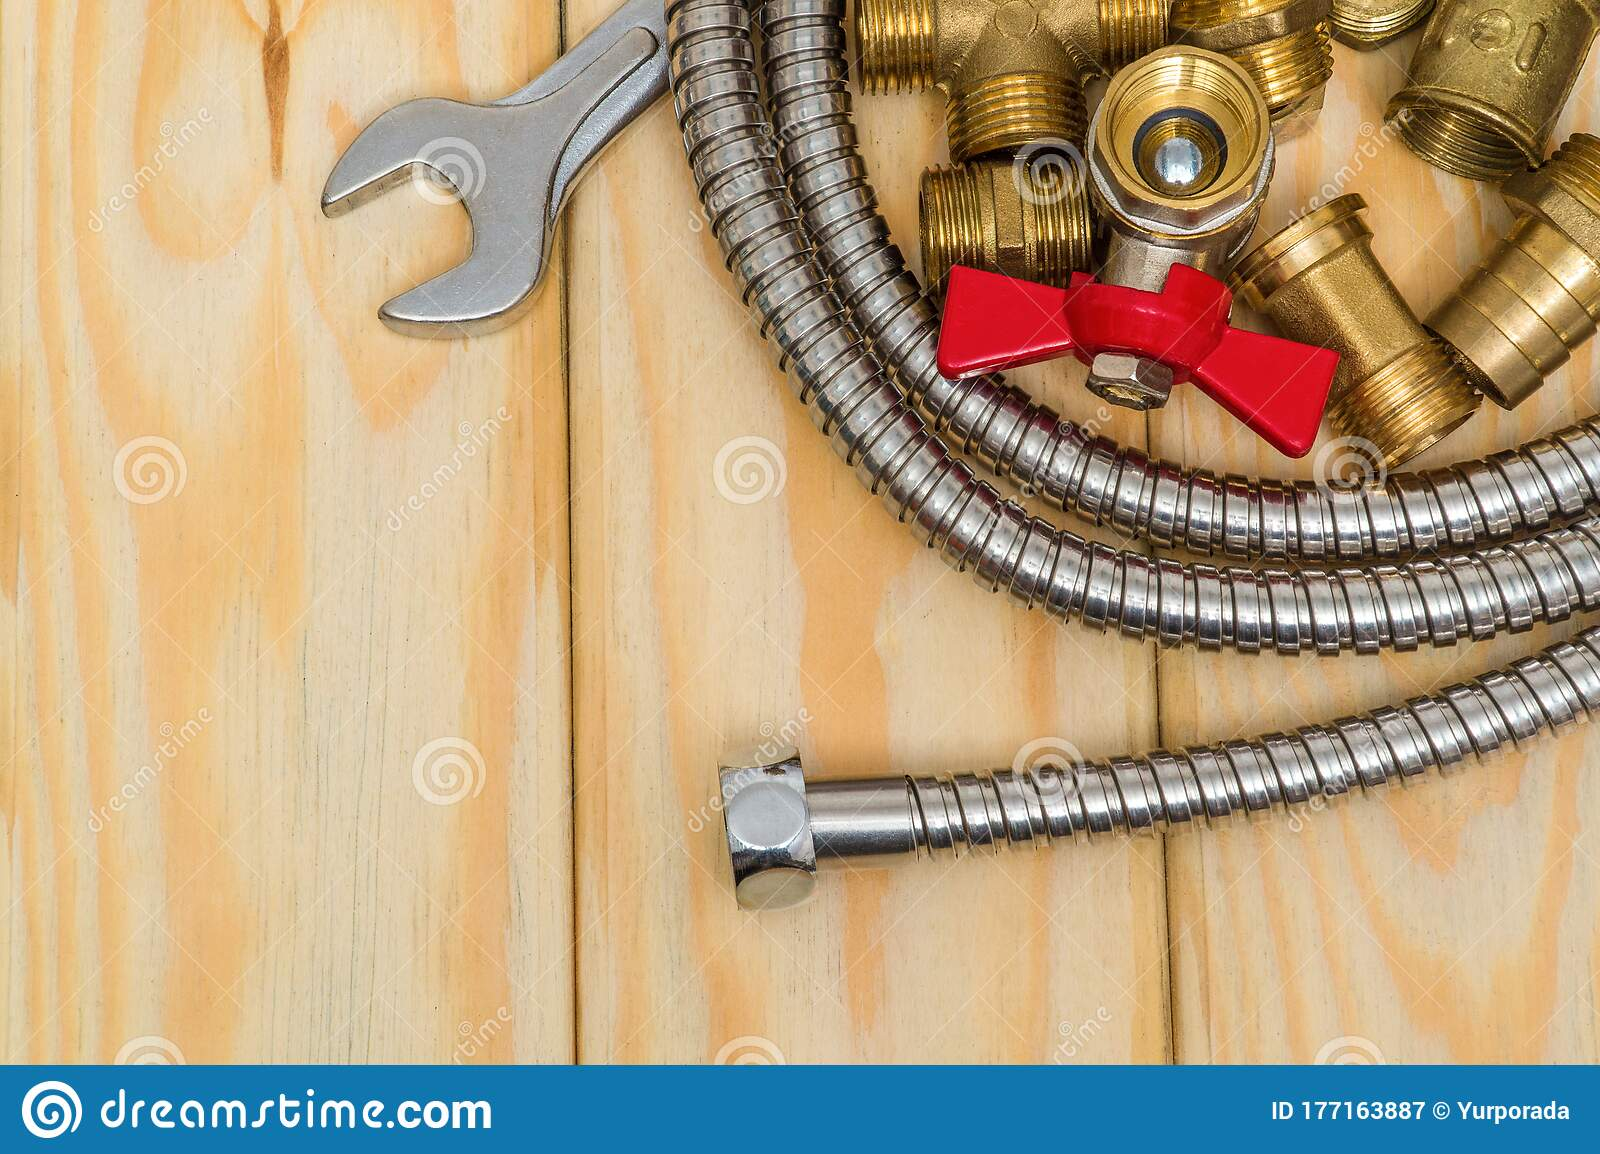 plumbing spare parts faucet tool and hose on wooden boards are used to replace or repair stock image image of tool tools 177163887